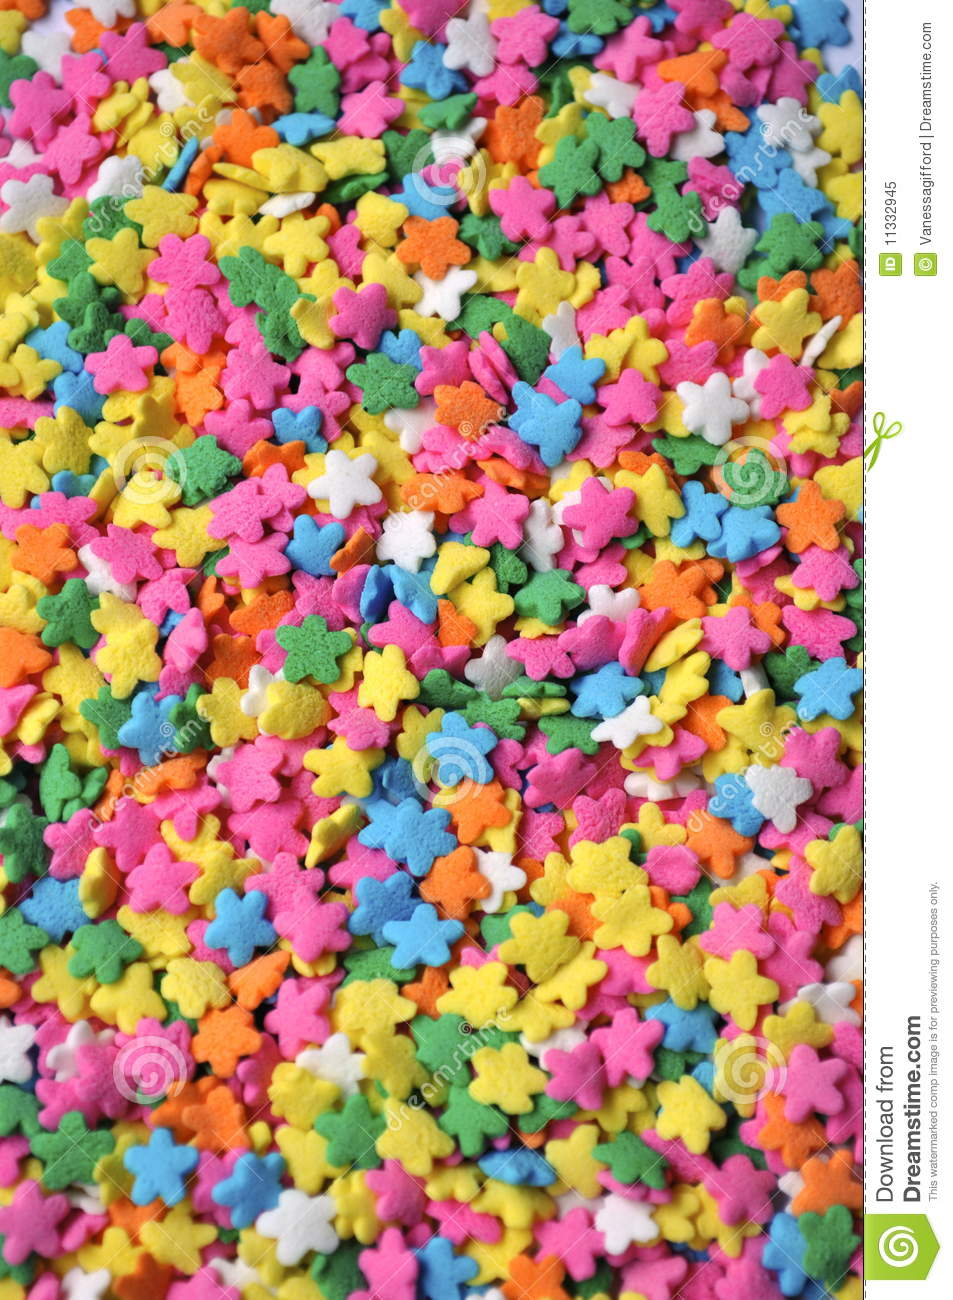 Cute Wallpaper For Iphone Pinterest Colorful Star Sprinkles Stock Image Image Of Colorful